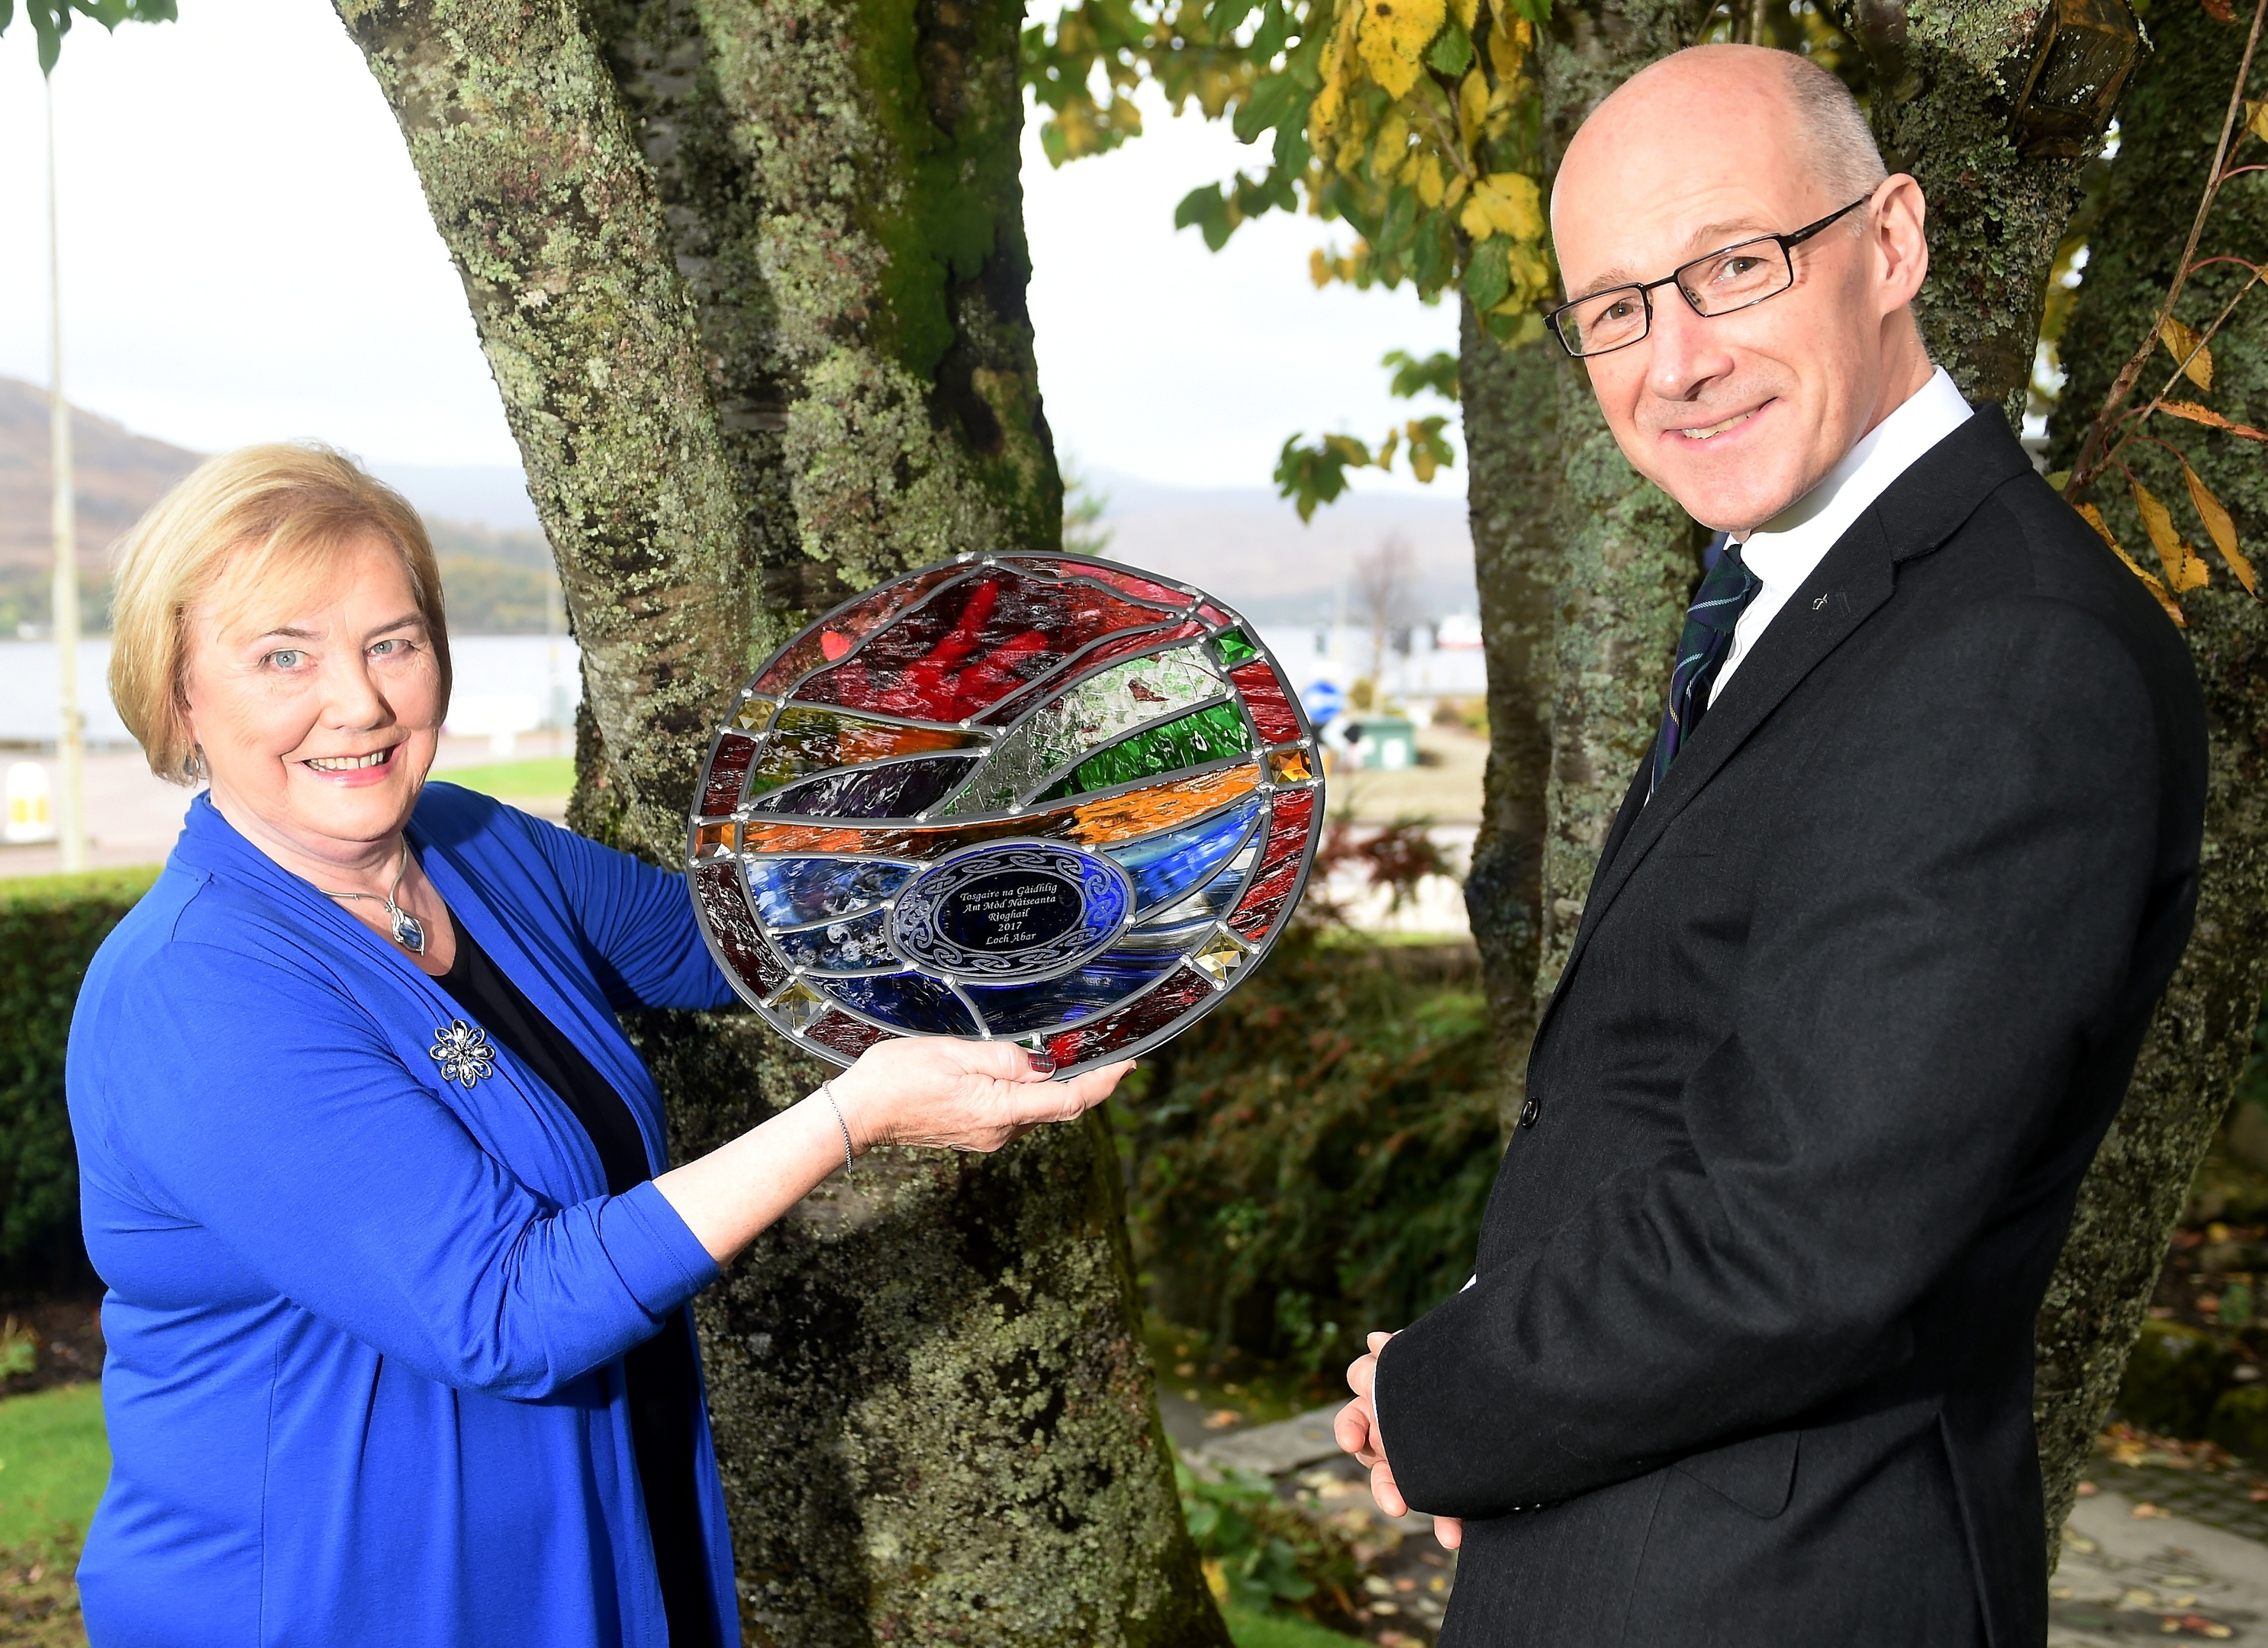 Gaelic Ambassador of the Year, Janet MacDonald of Tobermory, Mull with her award presented last night in Fort William. Also in the photograph is Deputy First Minister John Swinney. Picture by Sandy McCook